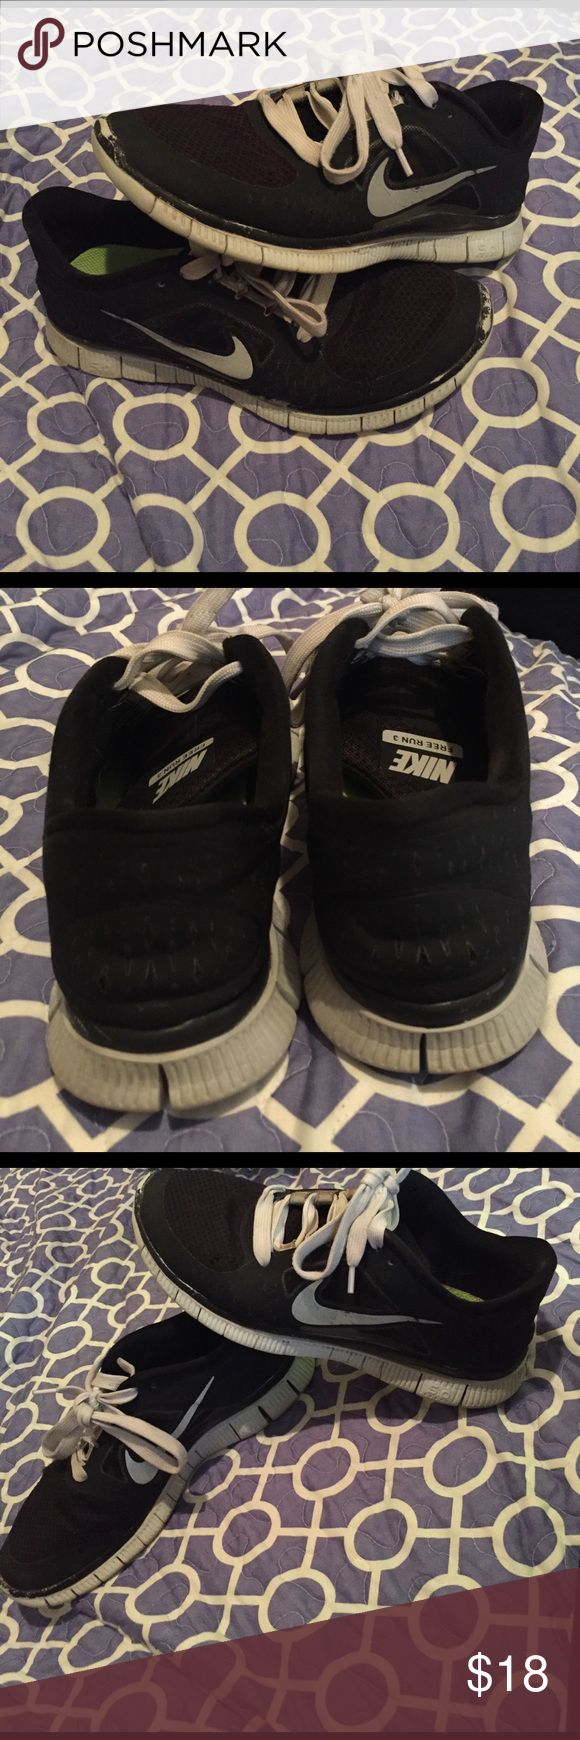 Nike Free Run 3 well loved Nike Free Run 3 lots of love left great running shoes feel free to make an offer Nike Shoes Athletic Shoes